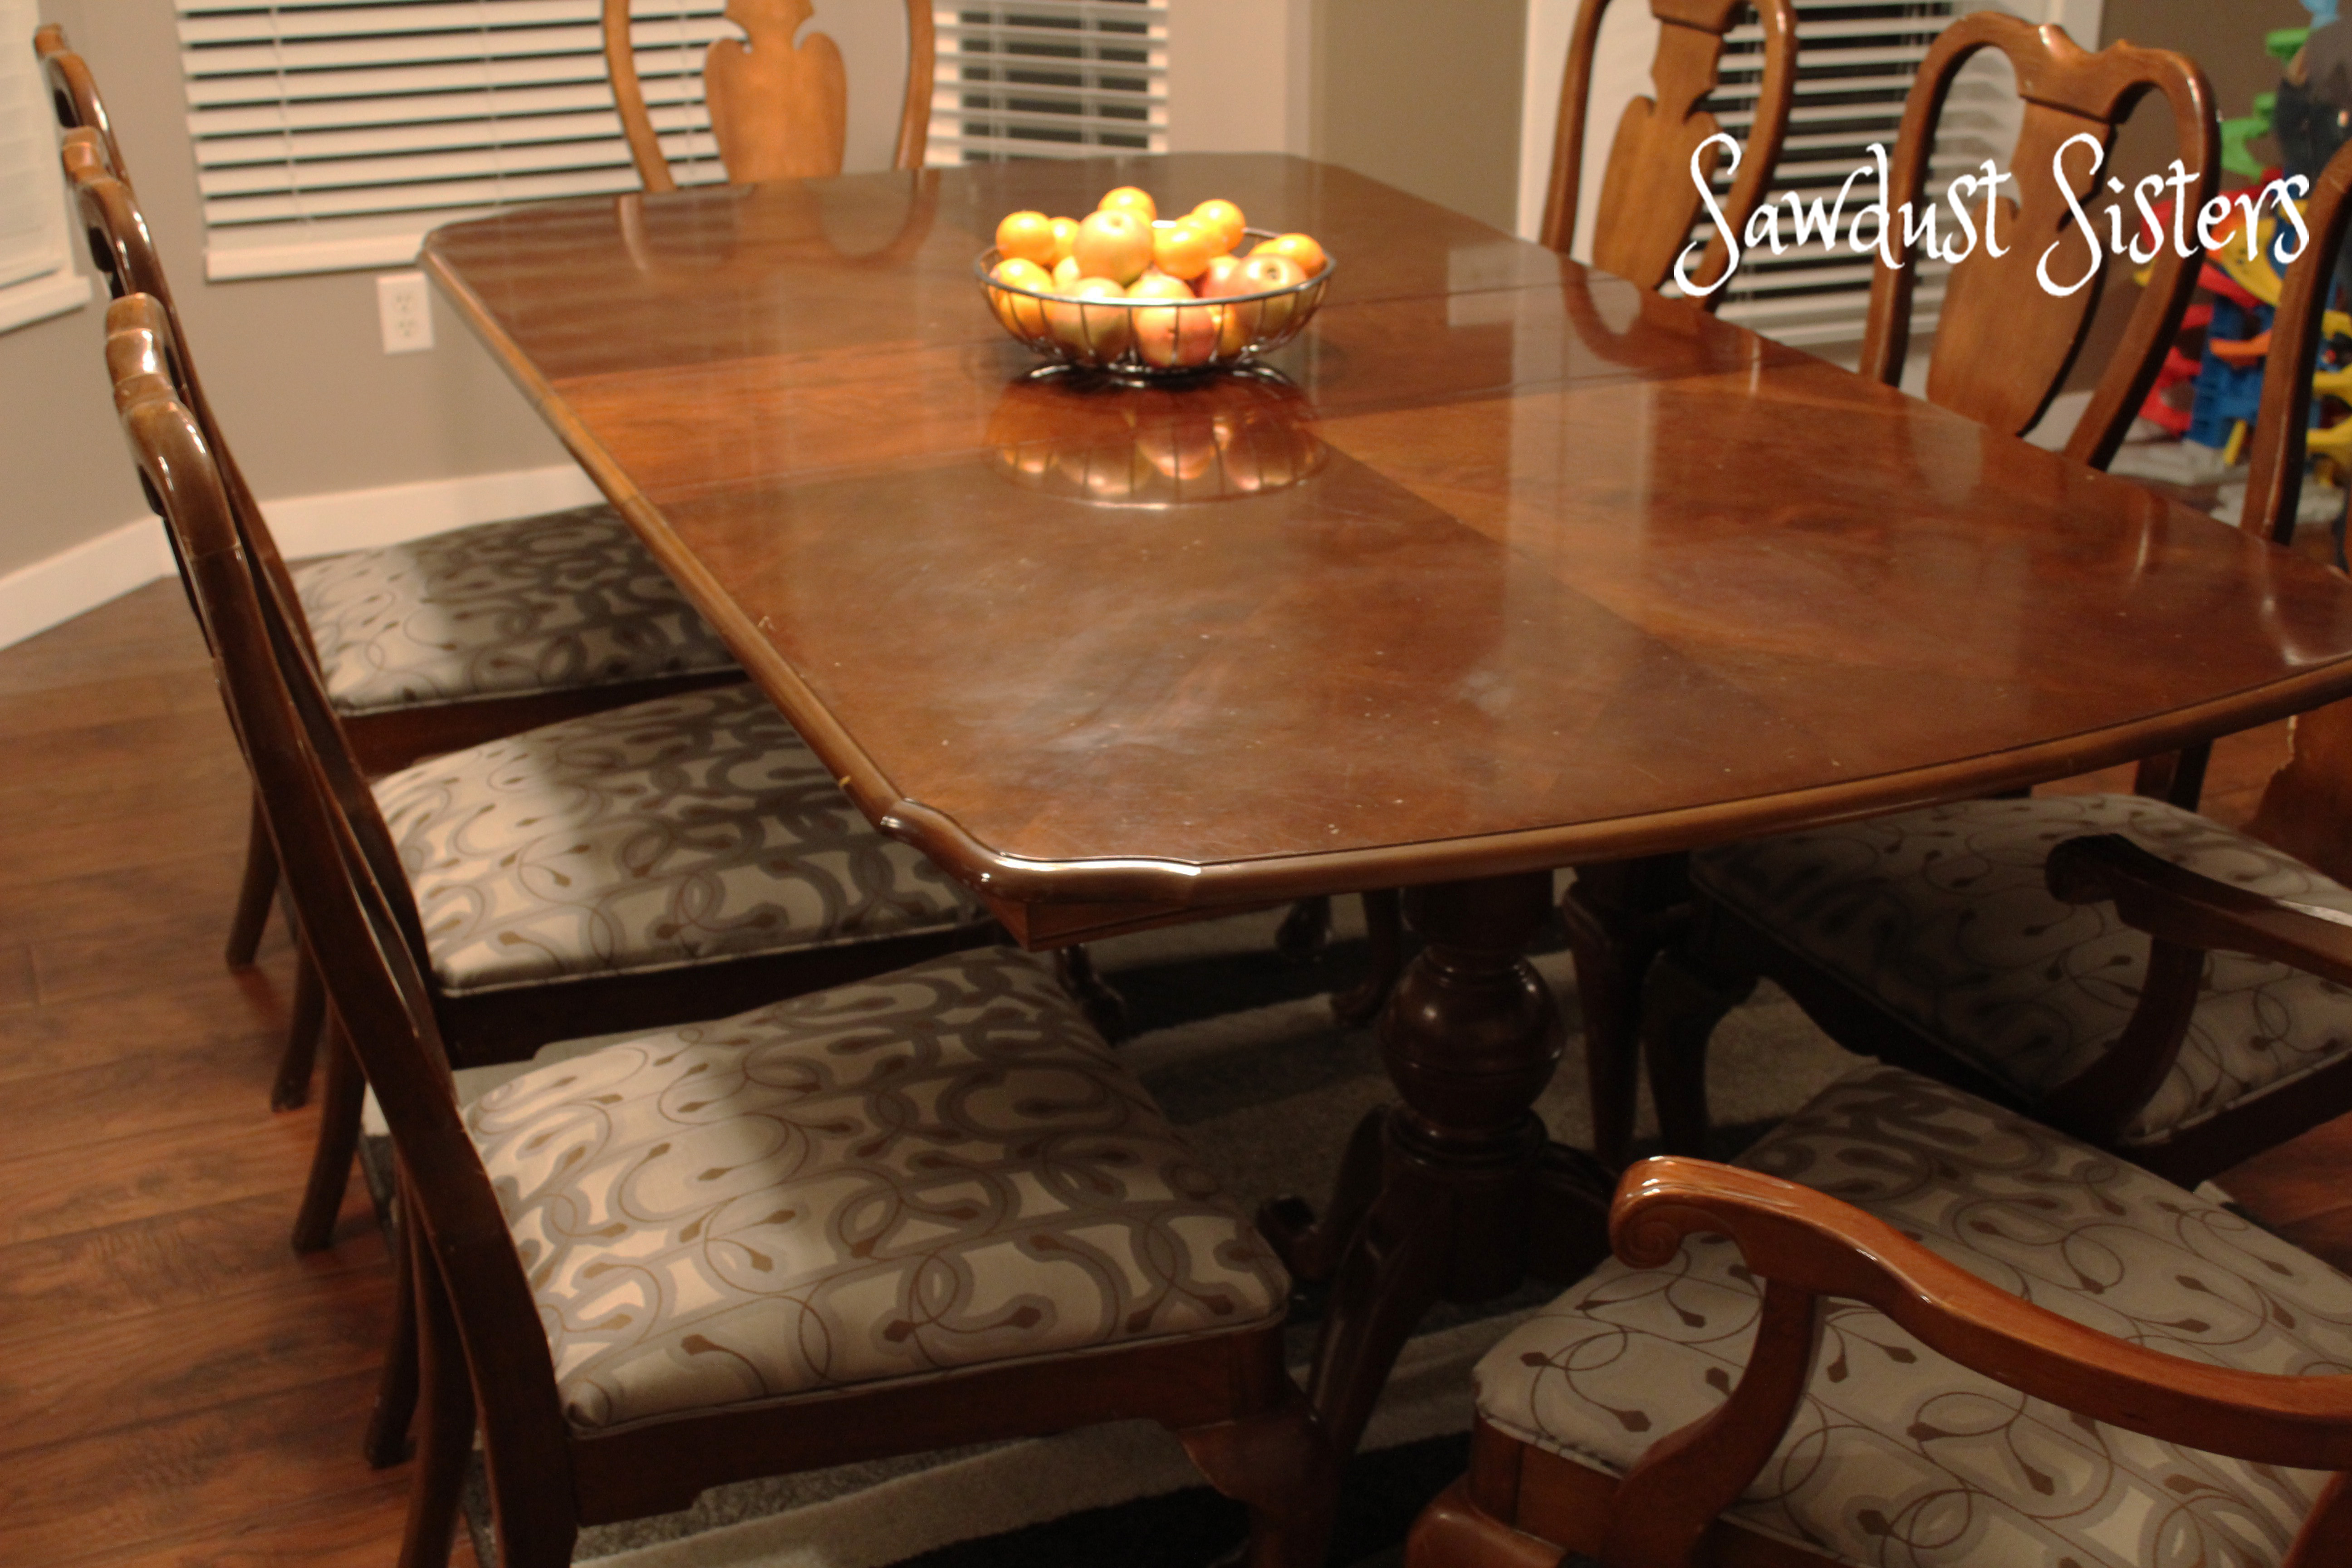 reupholster dining chairs office chair workout how to with piping sawdust sisters and attach full tutorial at sawdustsisters com